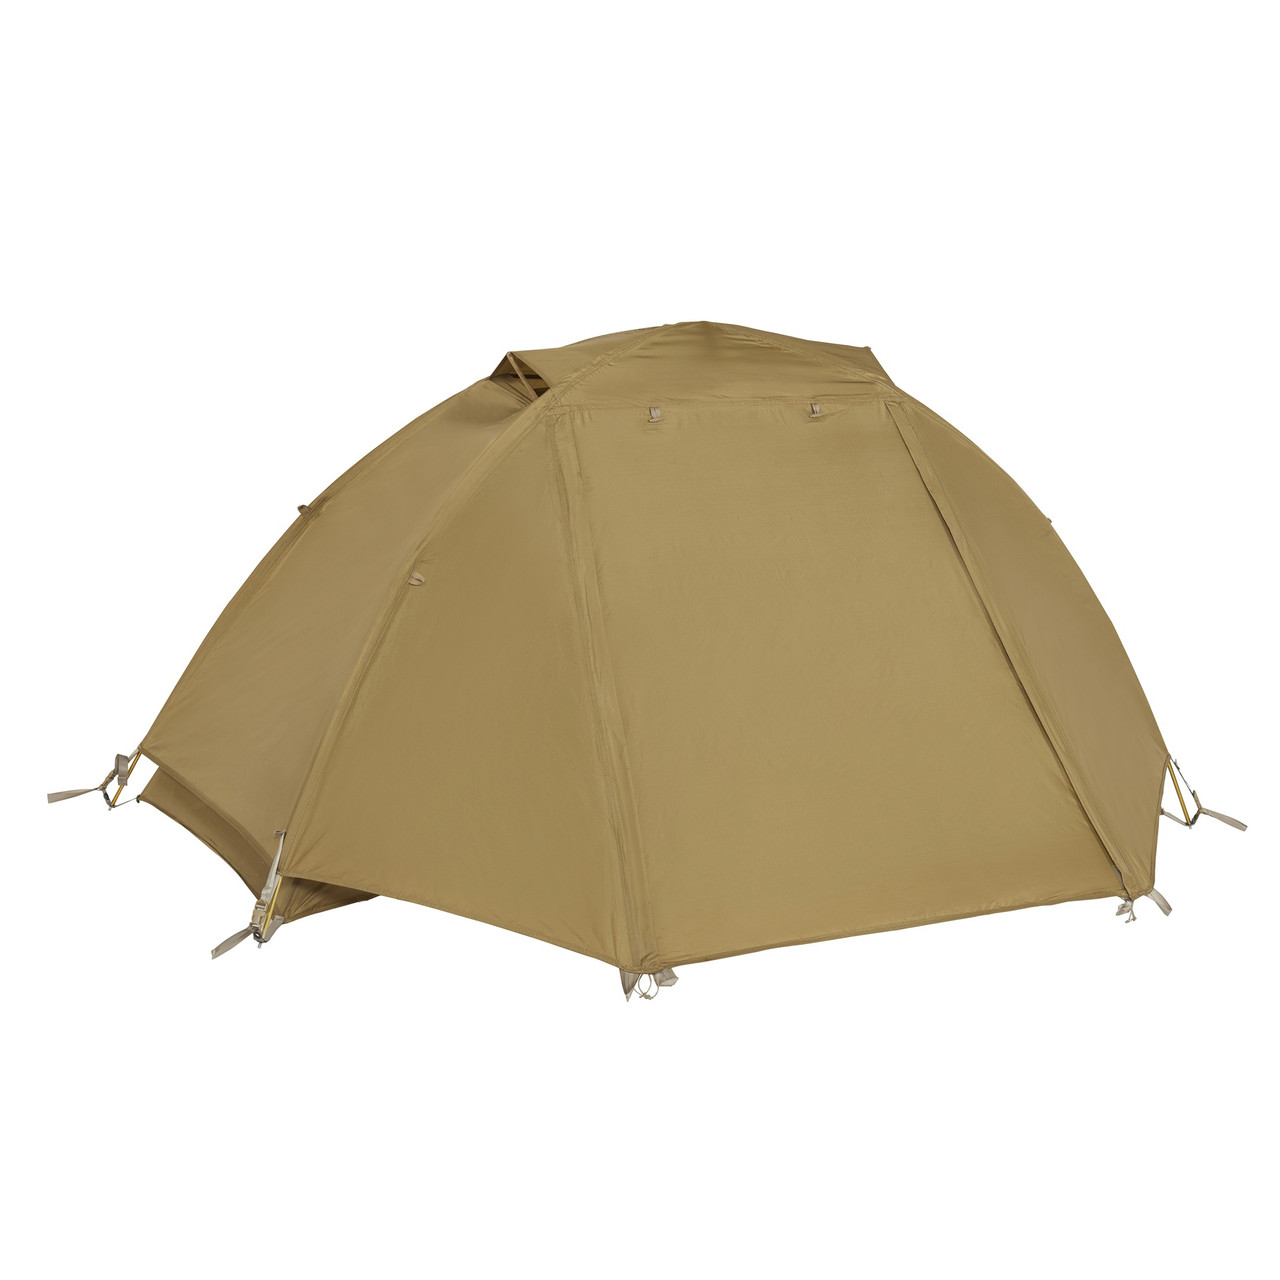 Kelty 1 Man Field Tent Import tent, shown with rain fly attached and fully zipped